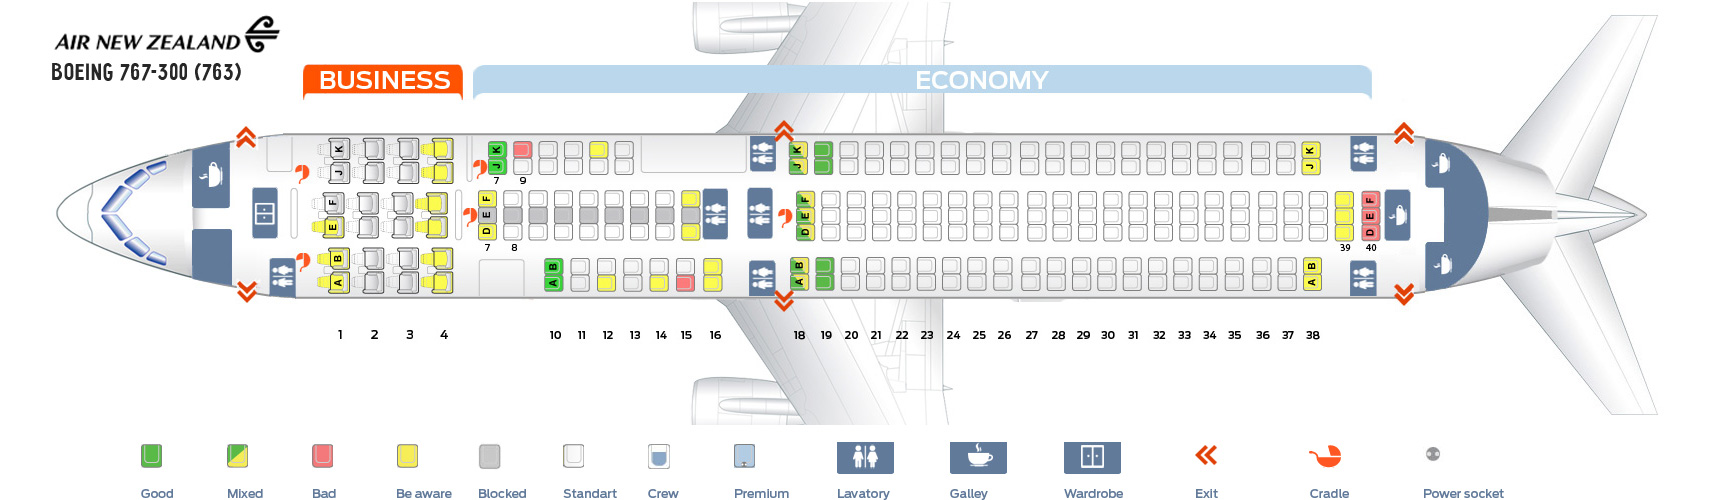 Seat Map Boeing 767-300 Air New Zealand